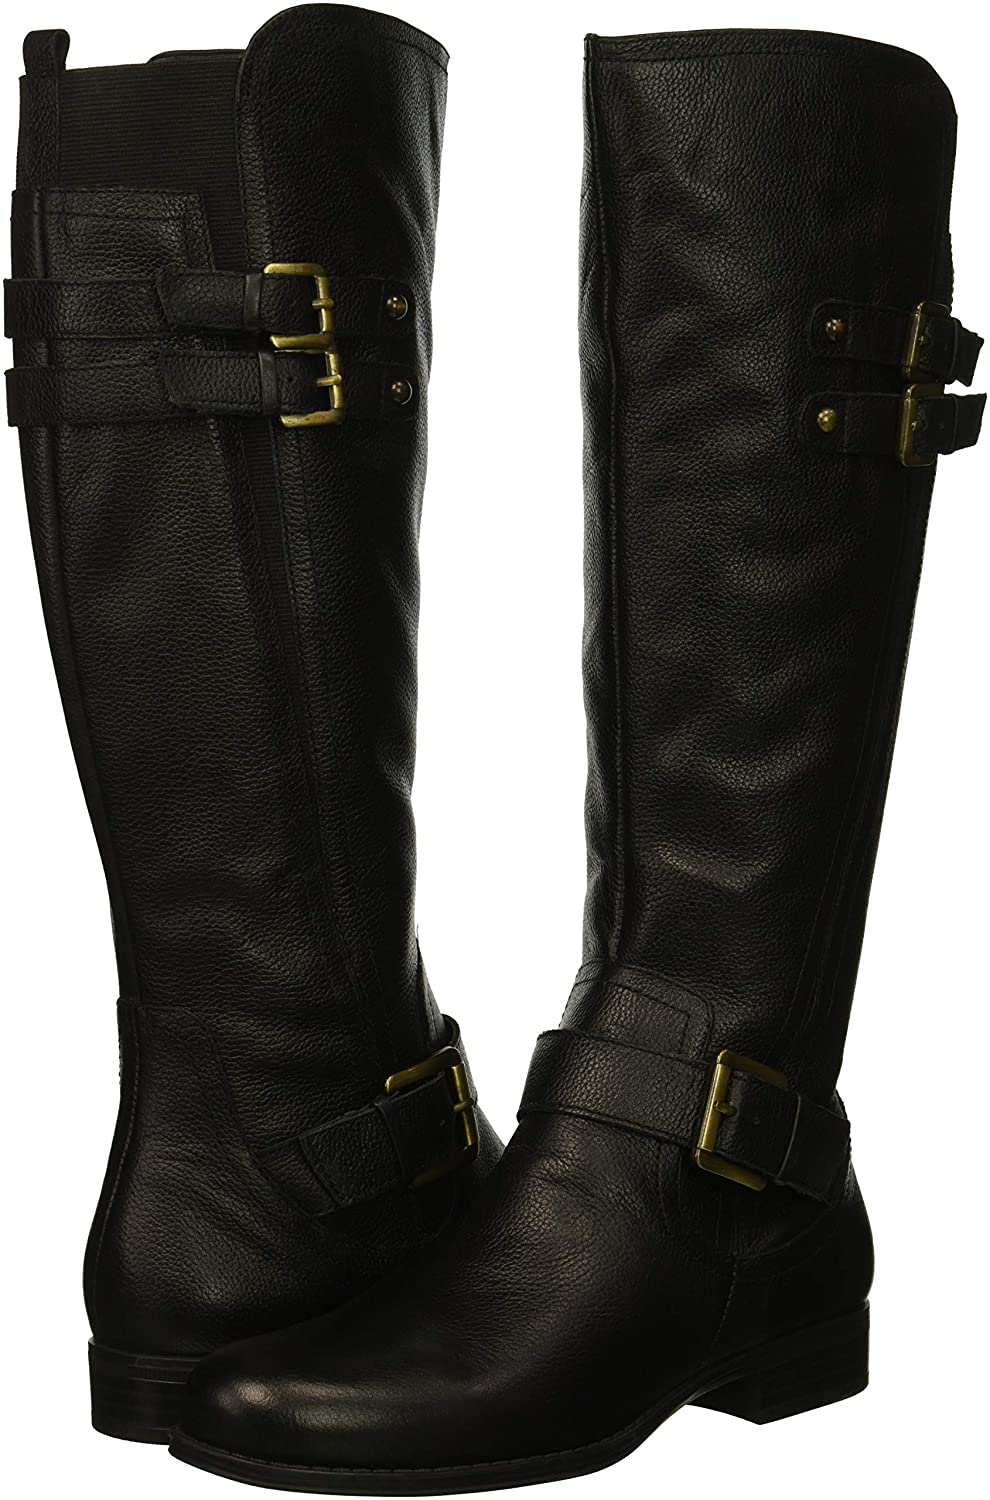 Women's Jessie Knee-High Triple-Buckle Straps Low-Heel Black Real Leather Boots - DeluxeAdultCostumes.com